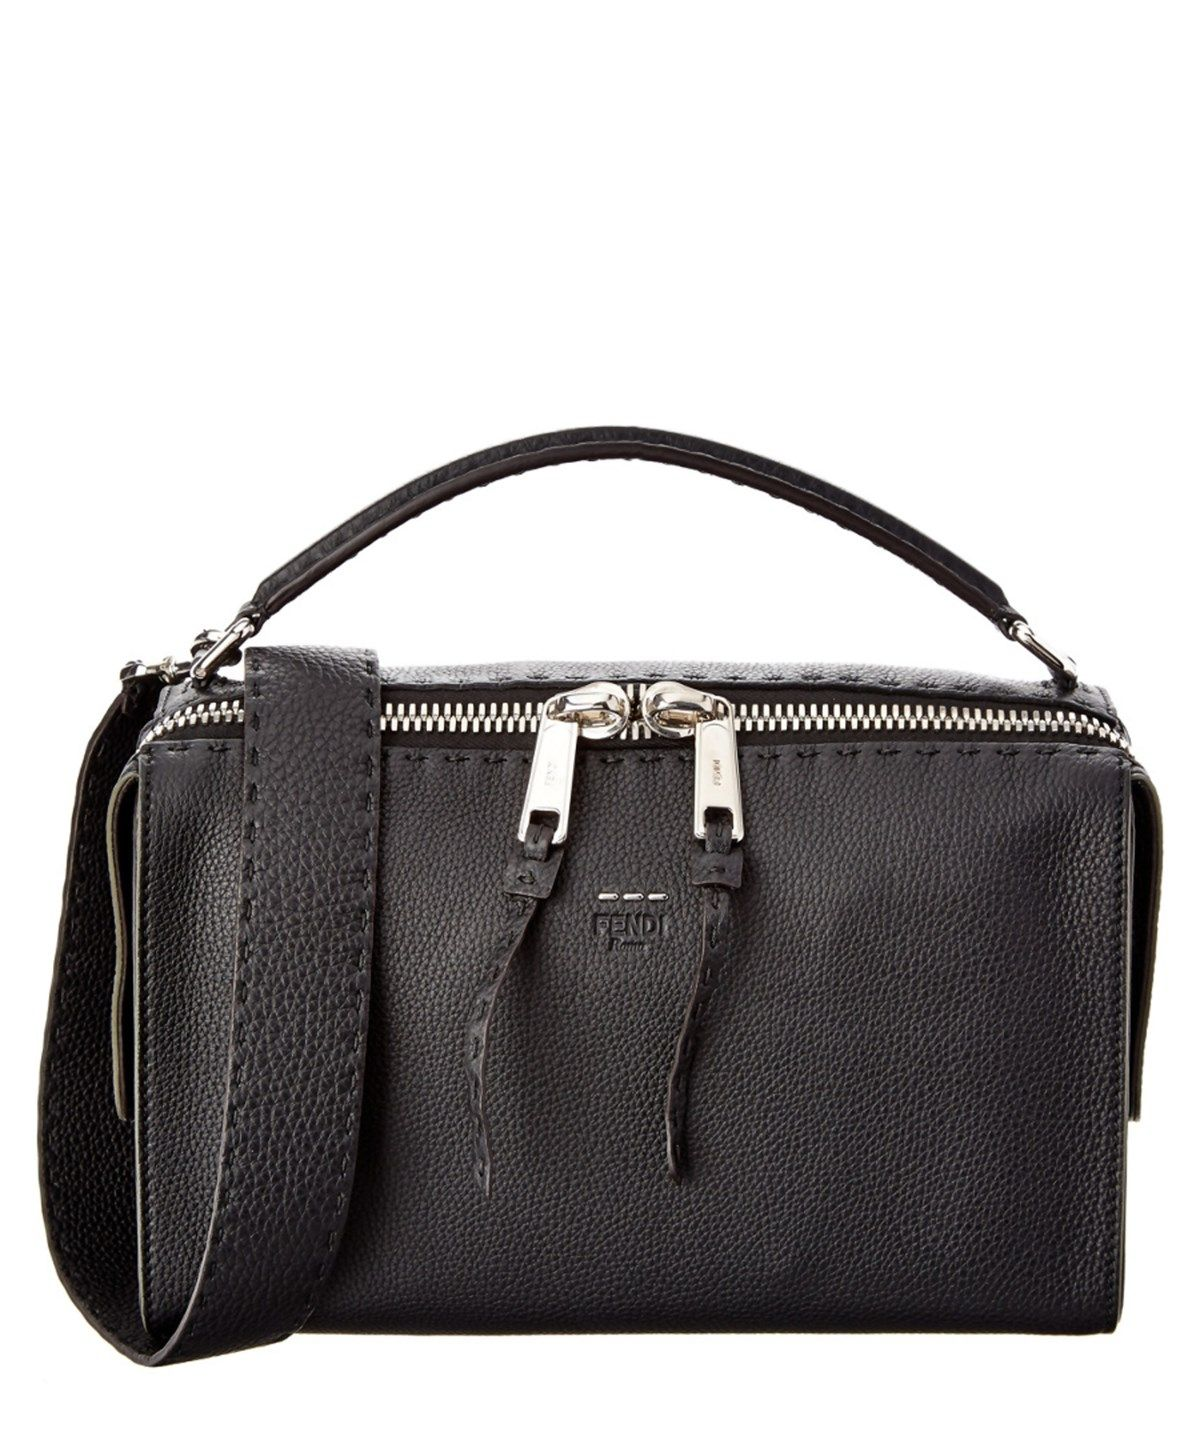 FENDI Fendi Lei Selleria Leather Boston Bag .  fendi  bags  shoulder bags   hand bags  leather  lining   ea186a59b0a8f